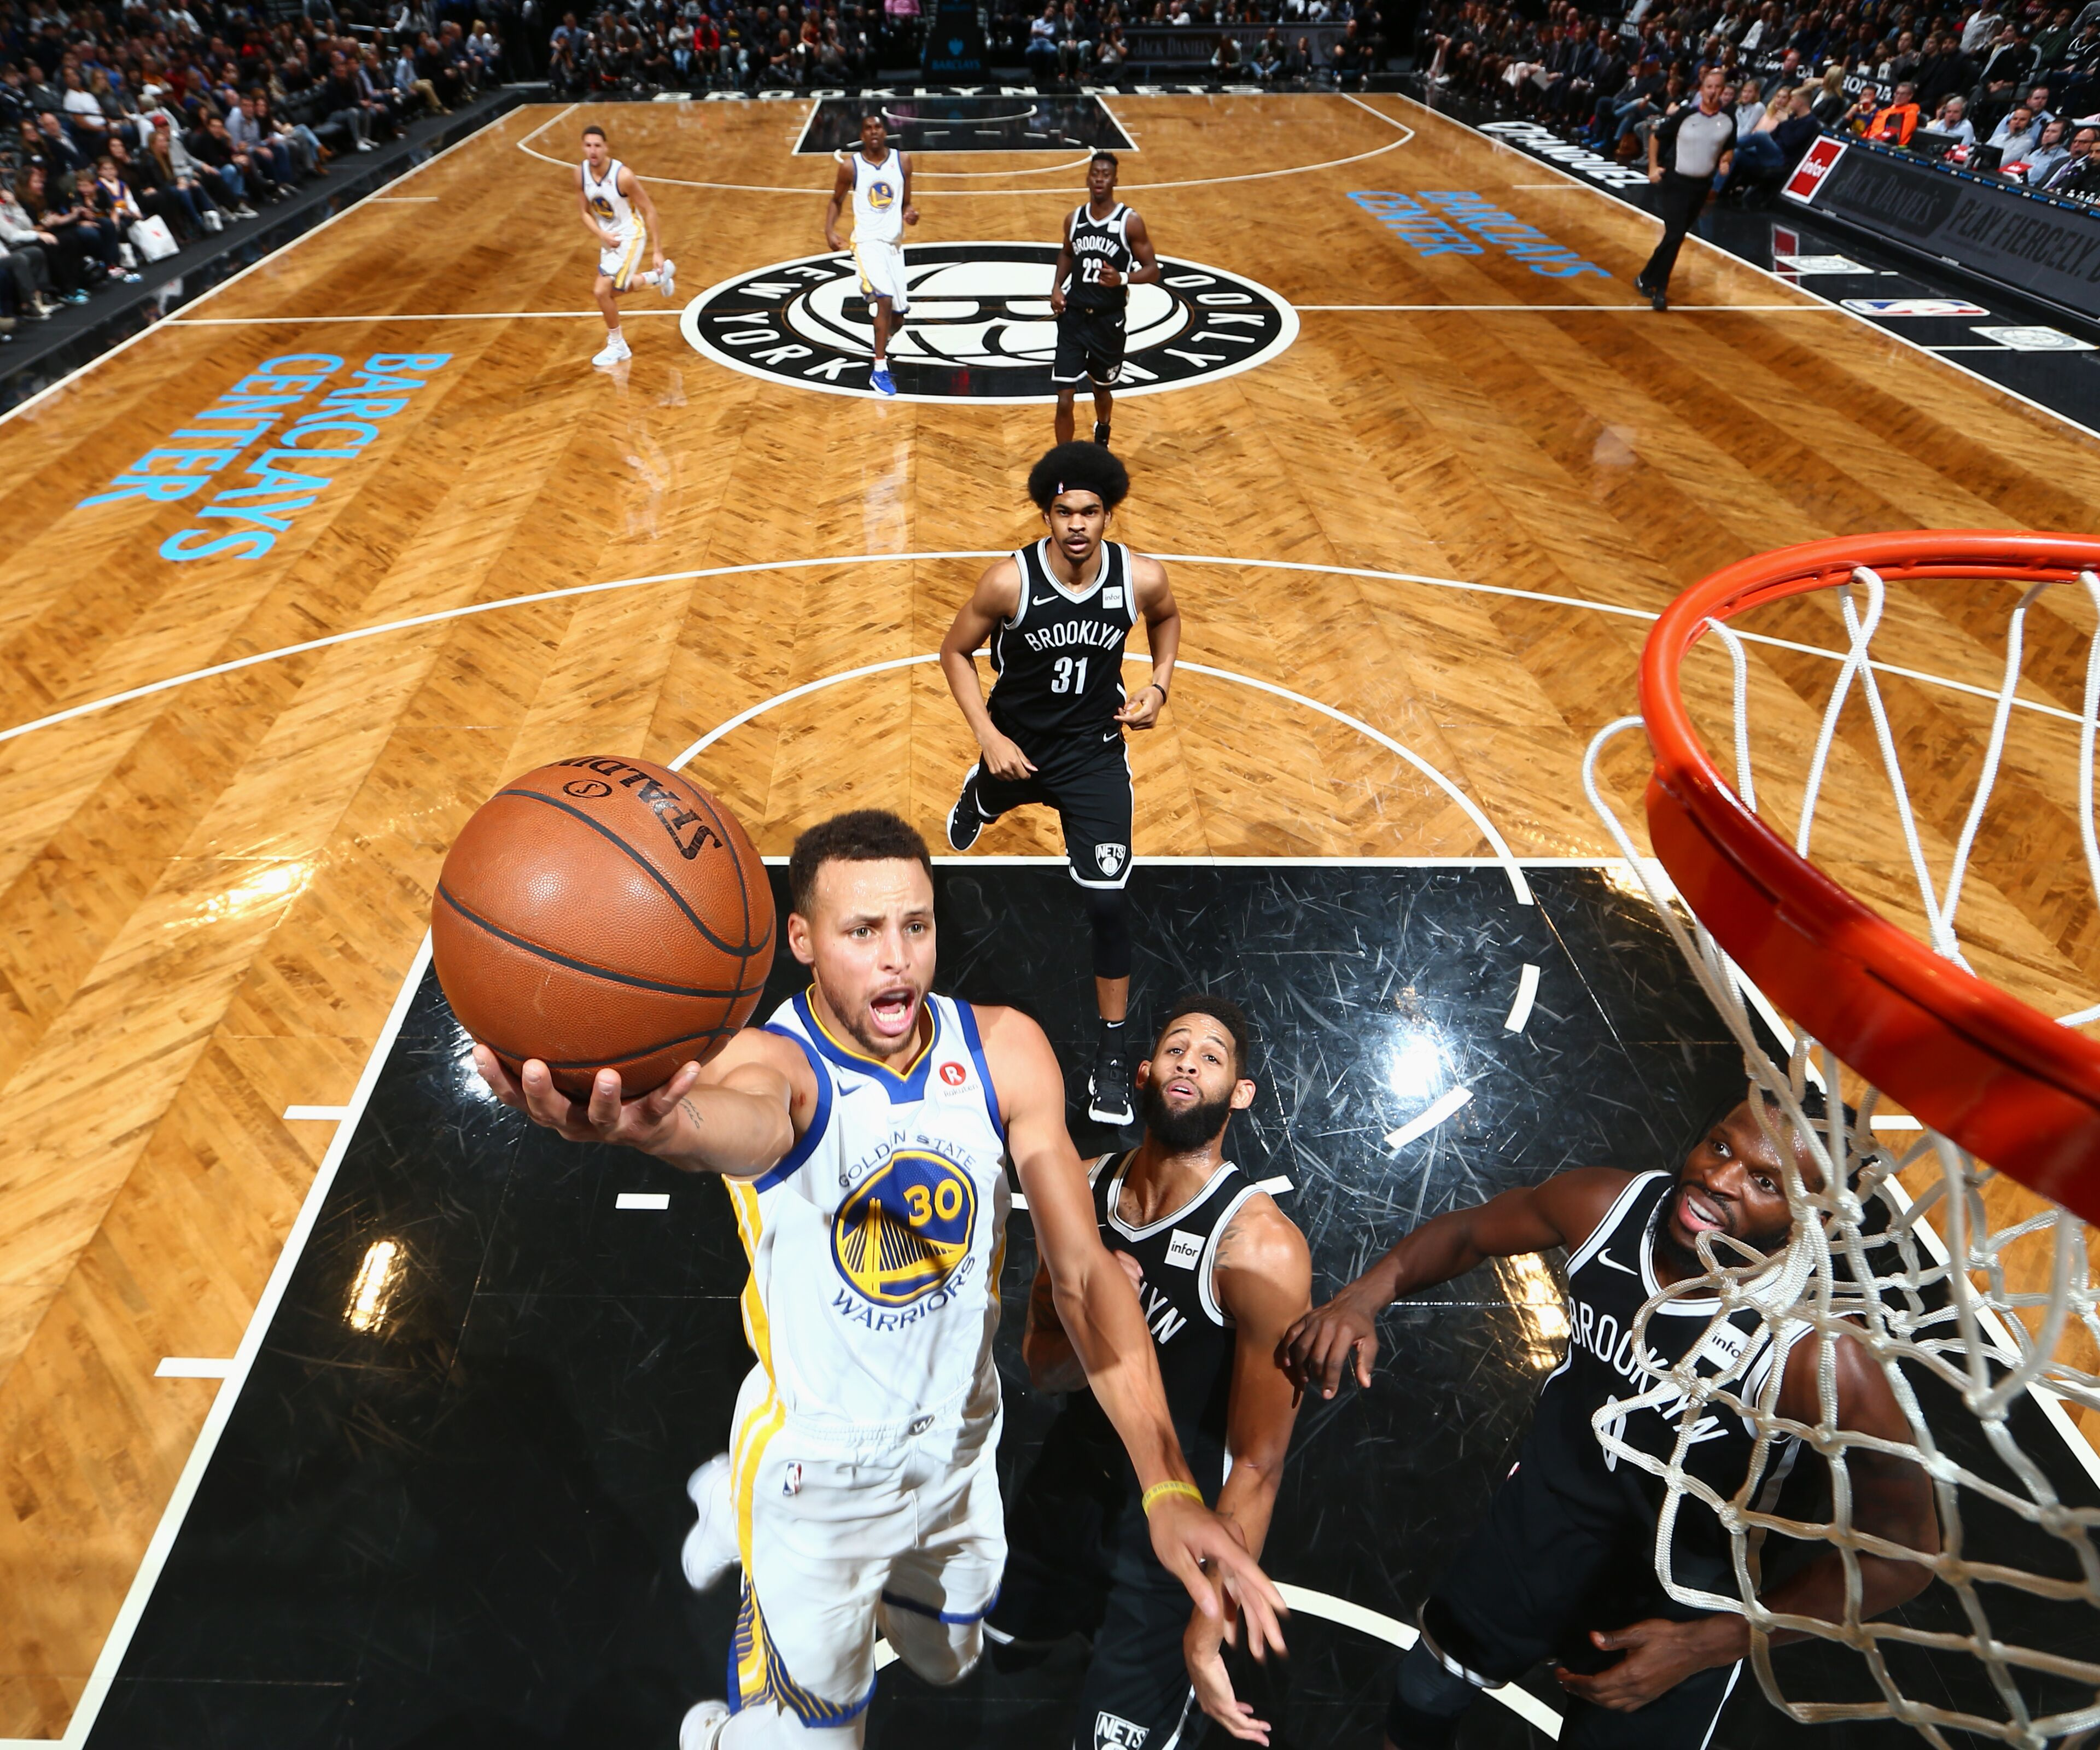 Warriors Record Without Stephen Curry 2017: Golden State Warriors Beat Brooklyn Nets 118-111 At Barclays